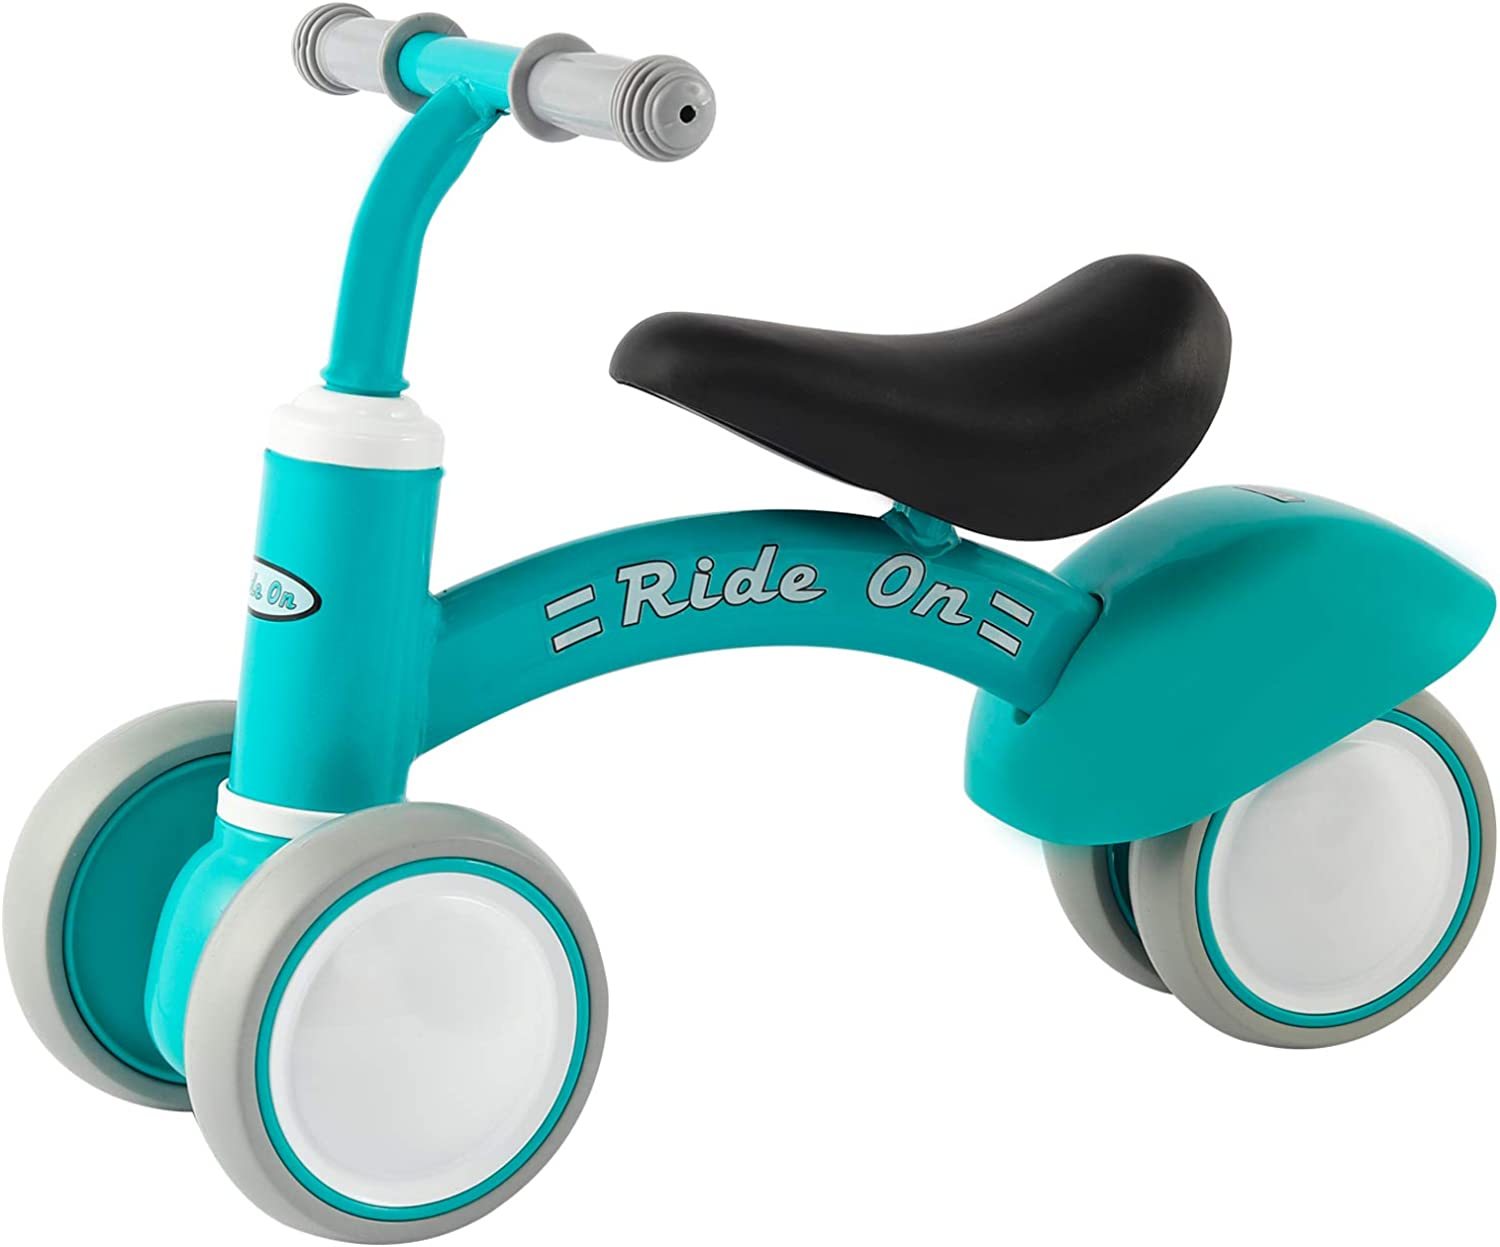 Baby Balance Bicycle Toy low-pricing is Great interest Boys Suitable 1-Year-Old for an